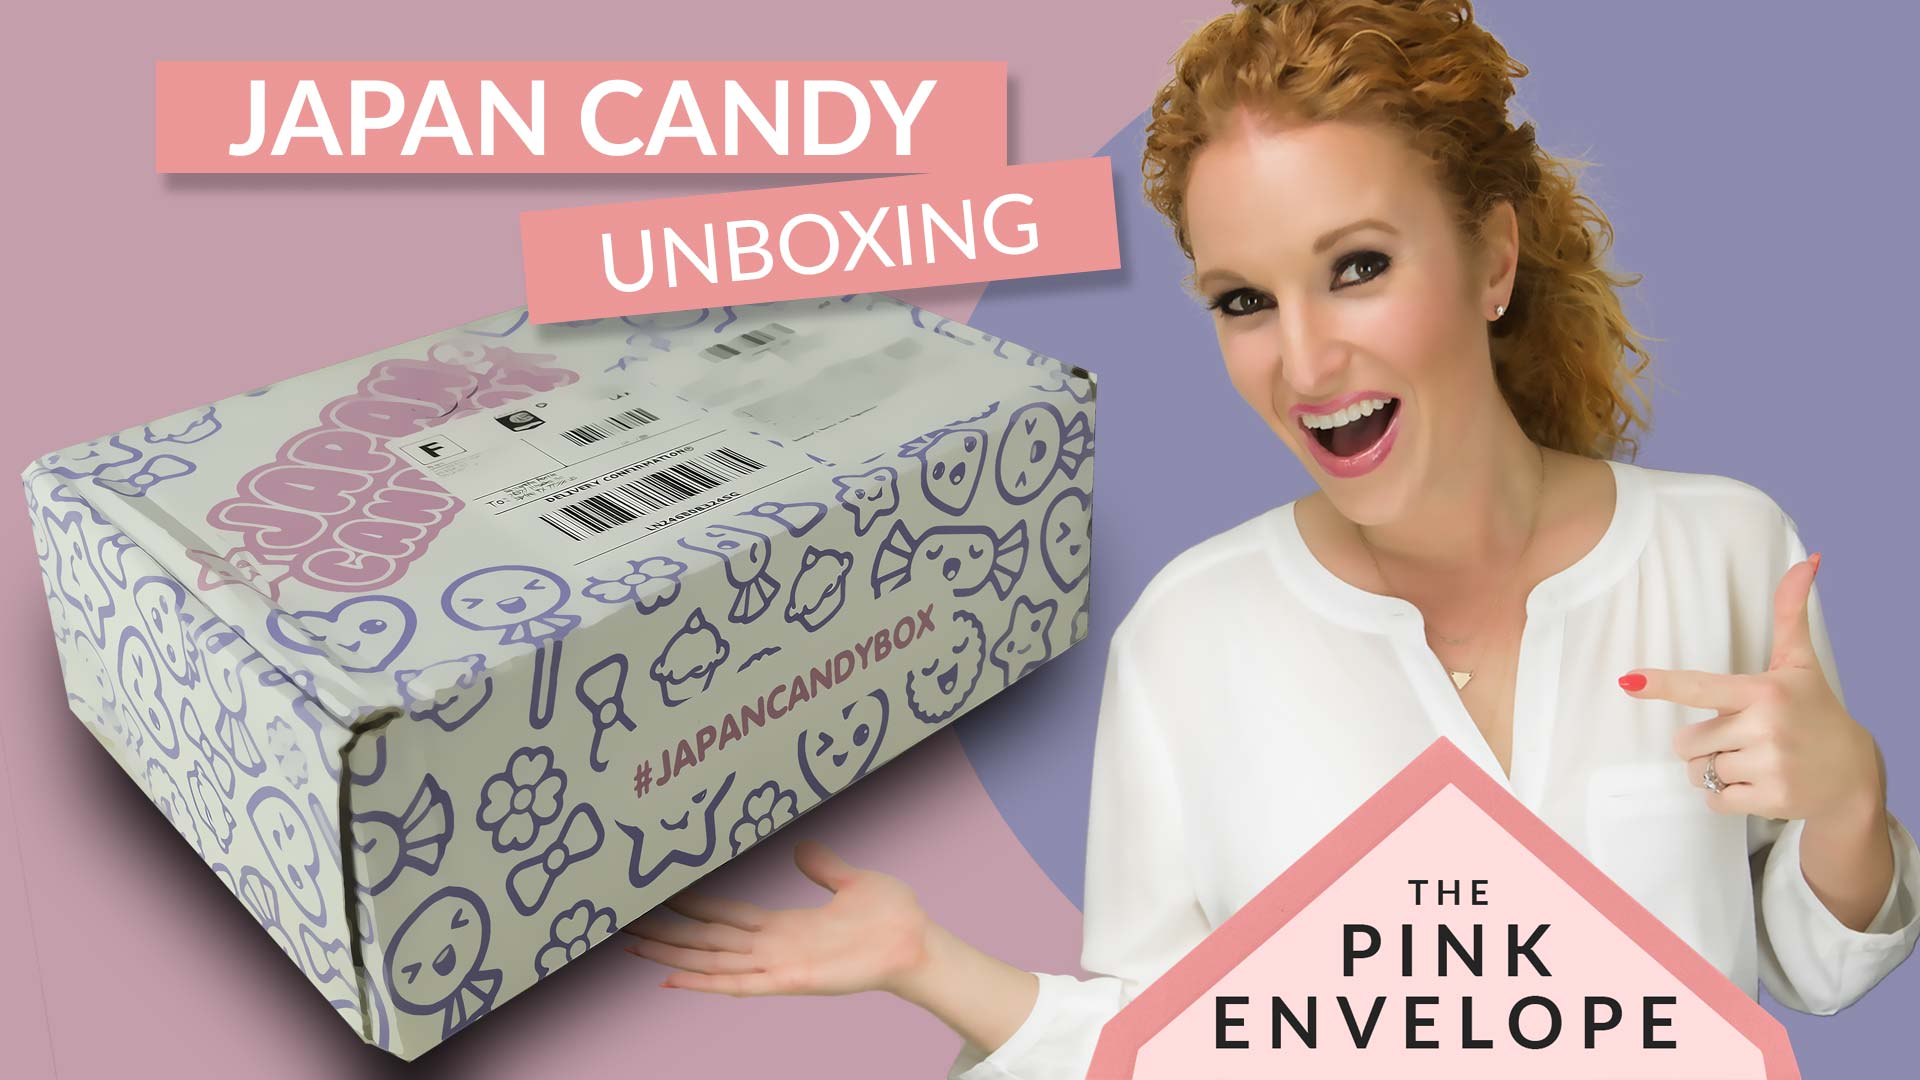 Candy Subscription – Japan Candy Box Review